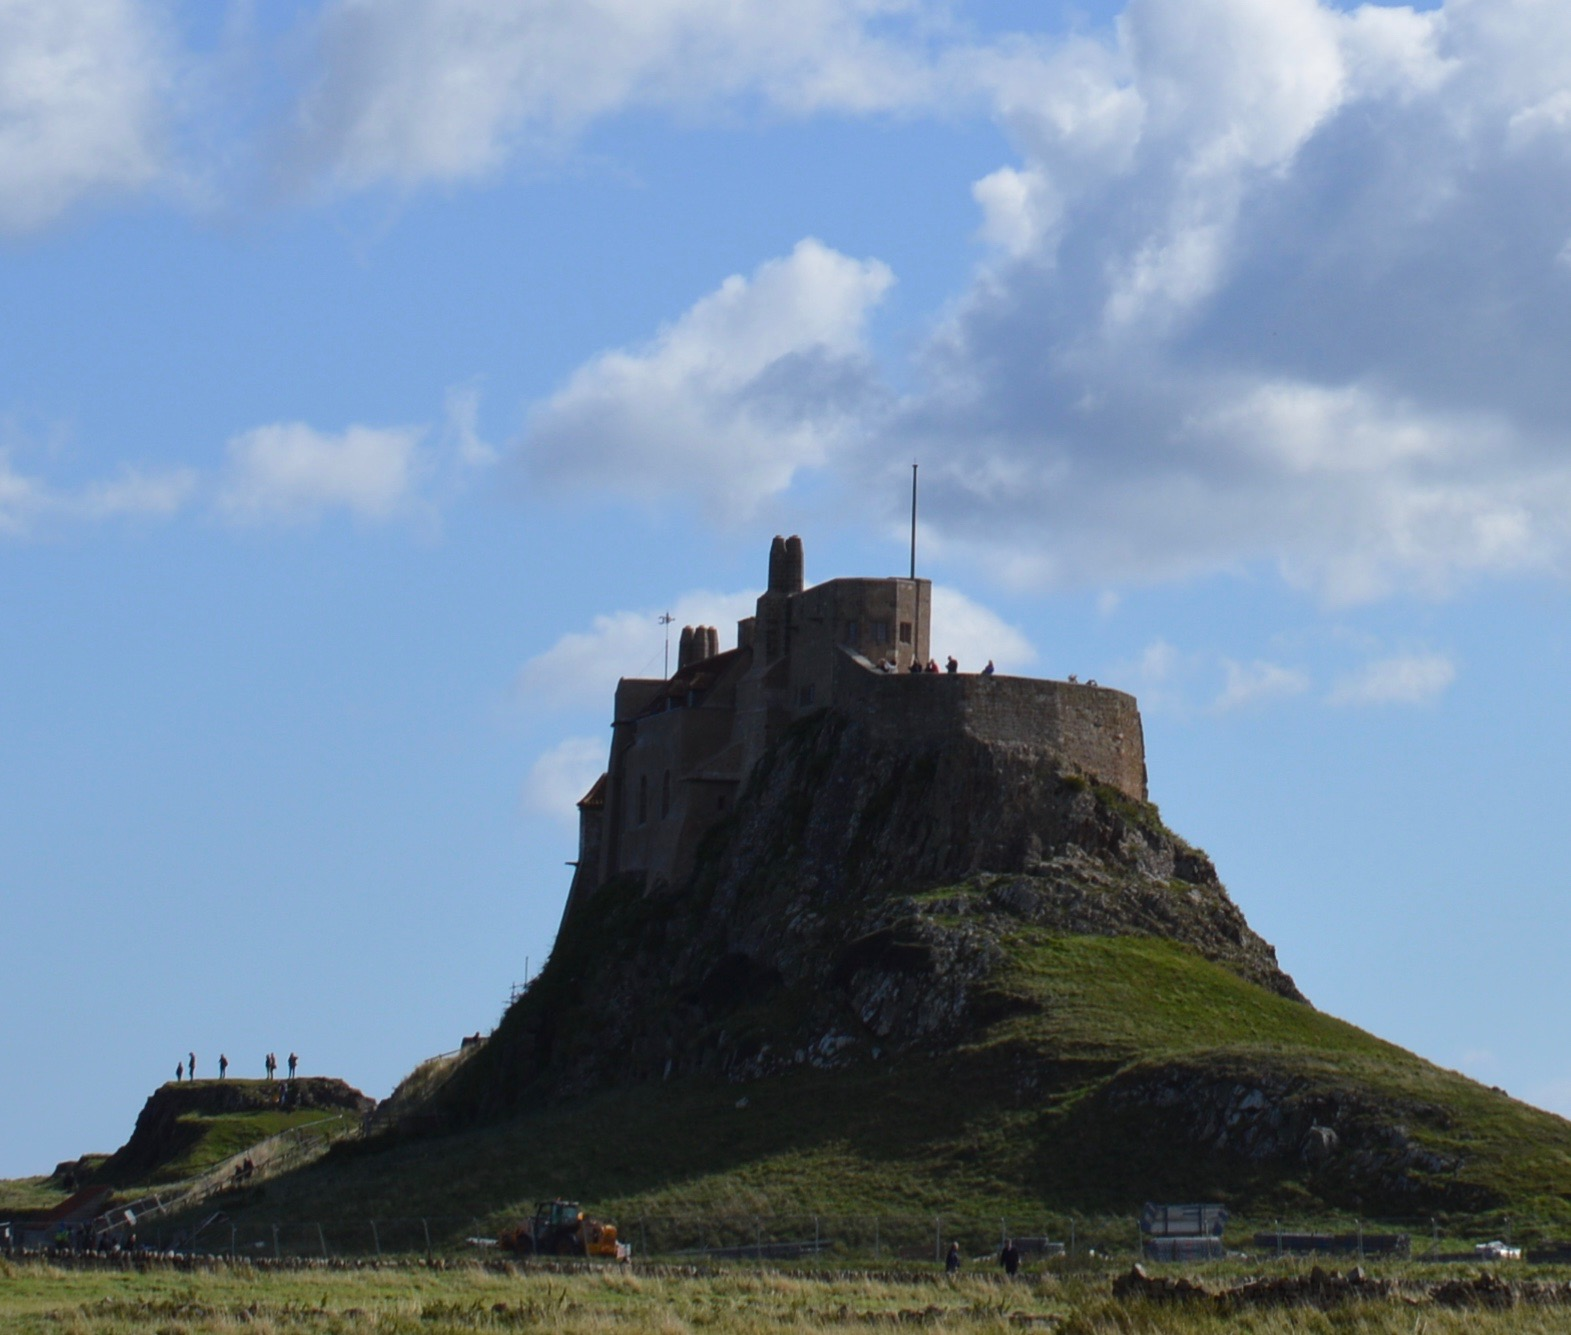 The Holy Island of Lindisfarne, Northumberland - what to see and do during a half day visit - lindisfarne castle